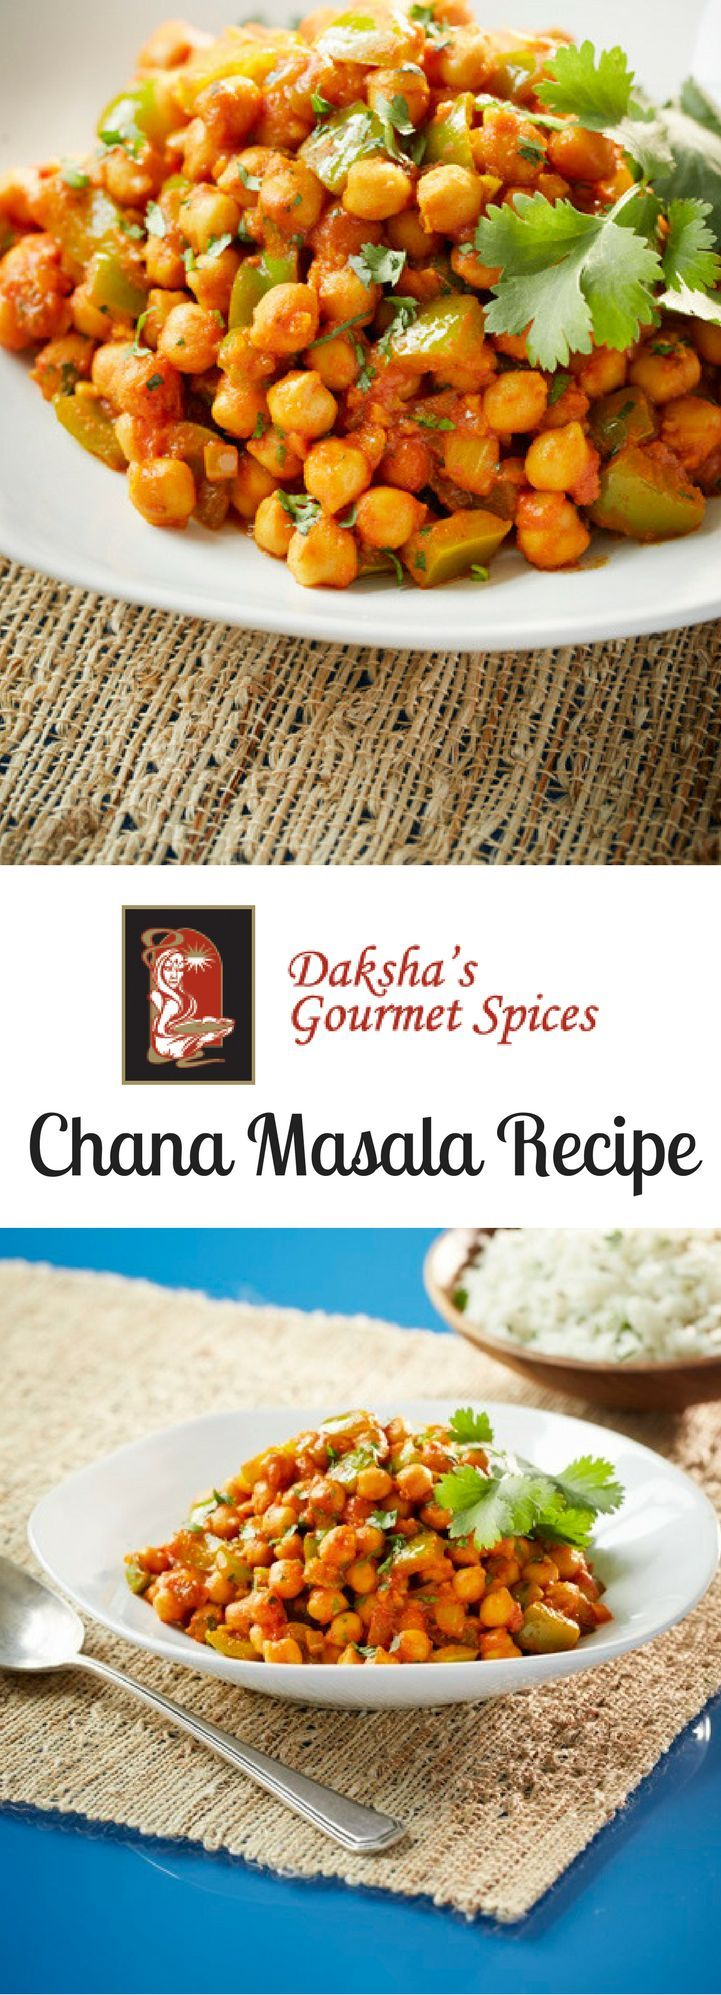 Daksha's Chana Masala Recipe! This delicious chick pea #curry with green peppers, onions and tomatoes is sure to satisfy your taste buds. Visit the link to see the #recipe, and video tutorial as seen on Global BC News!